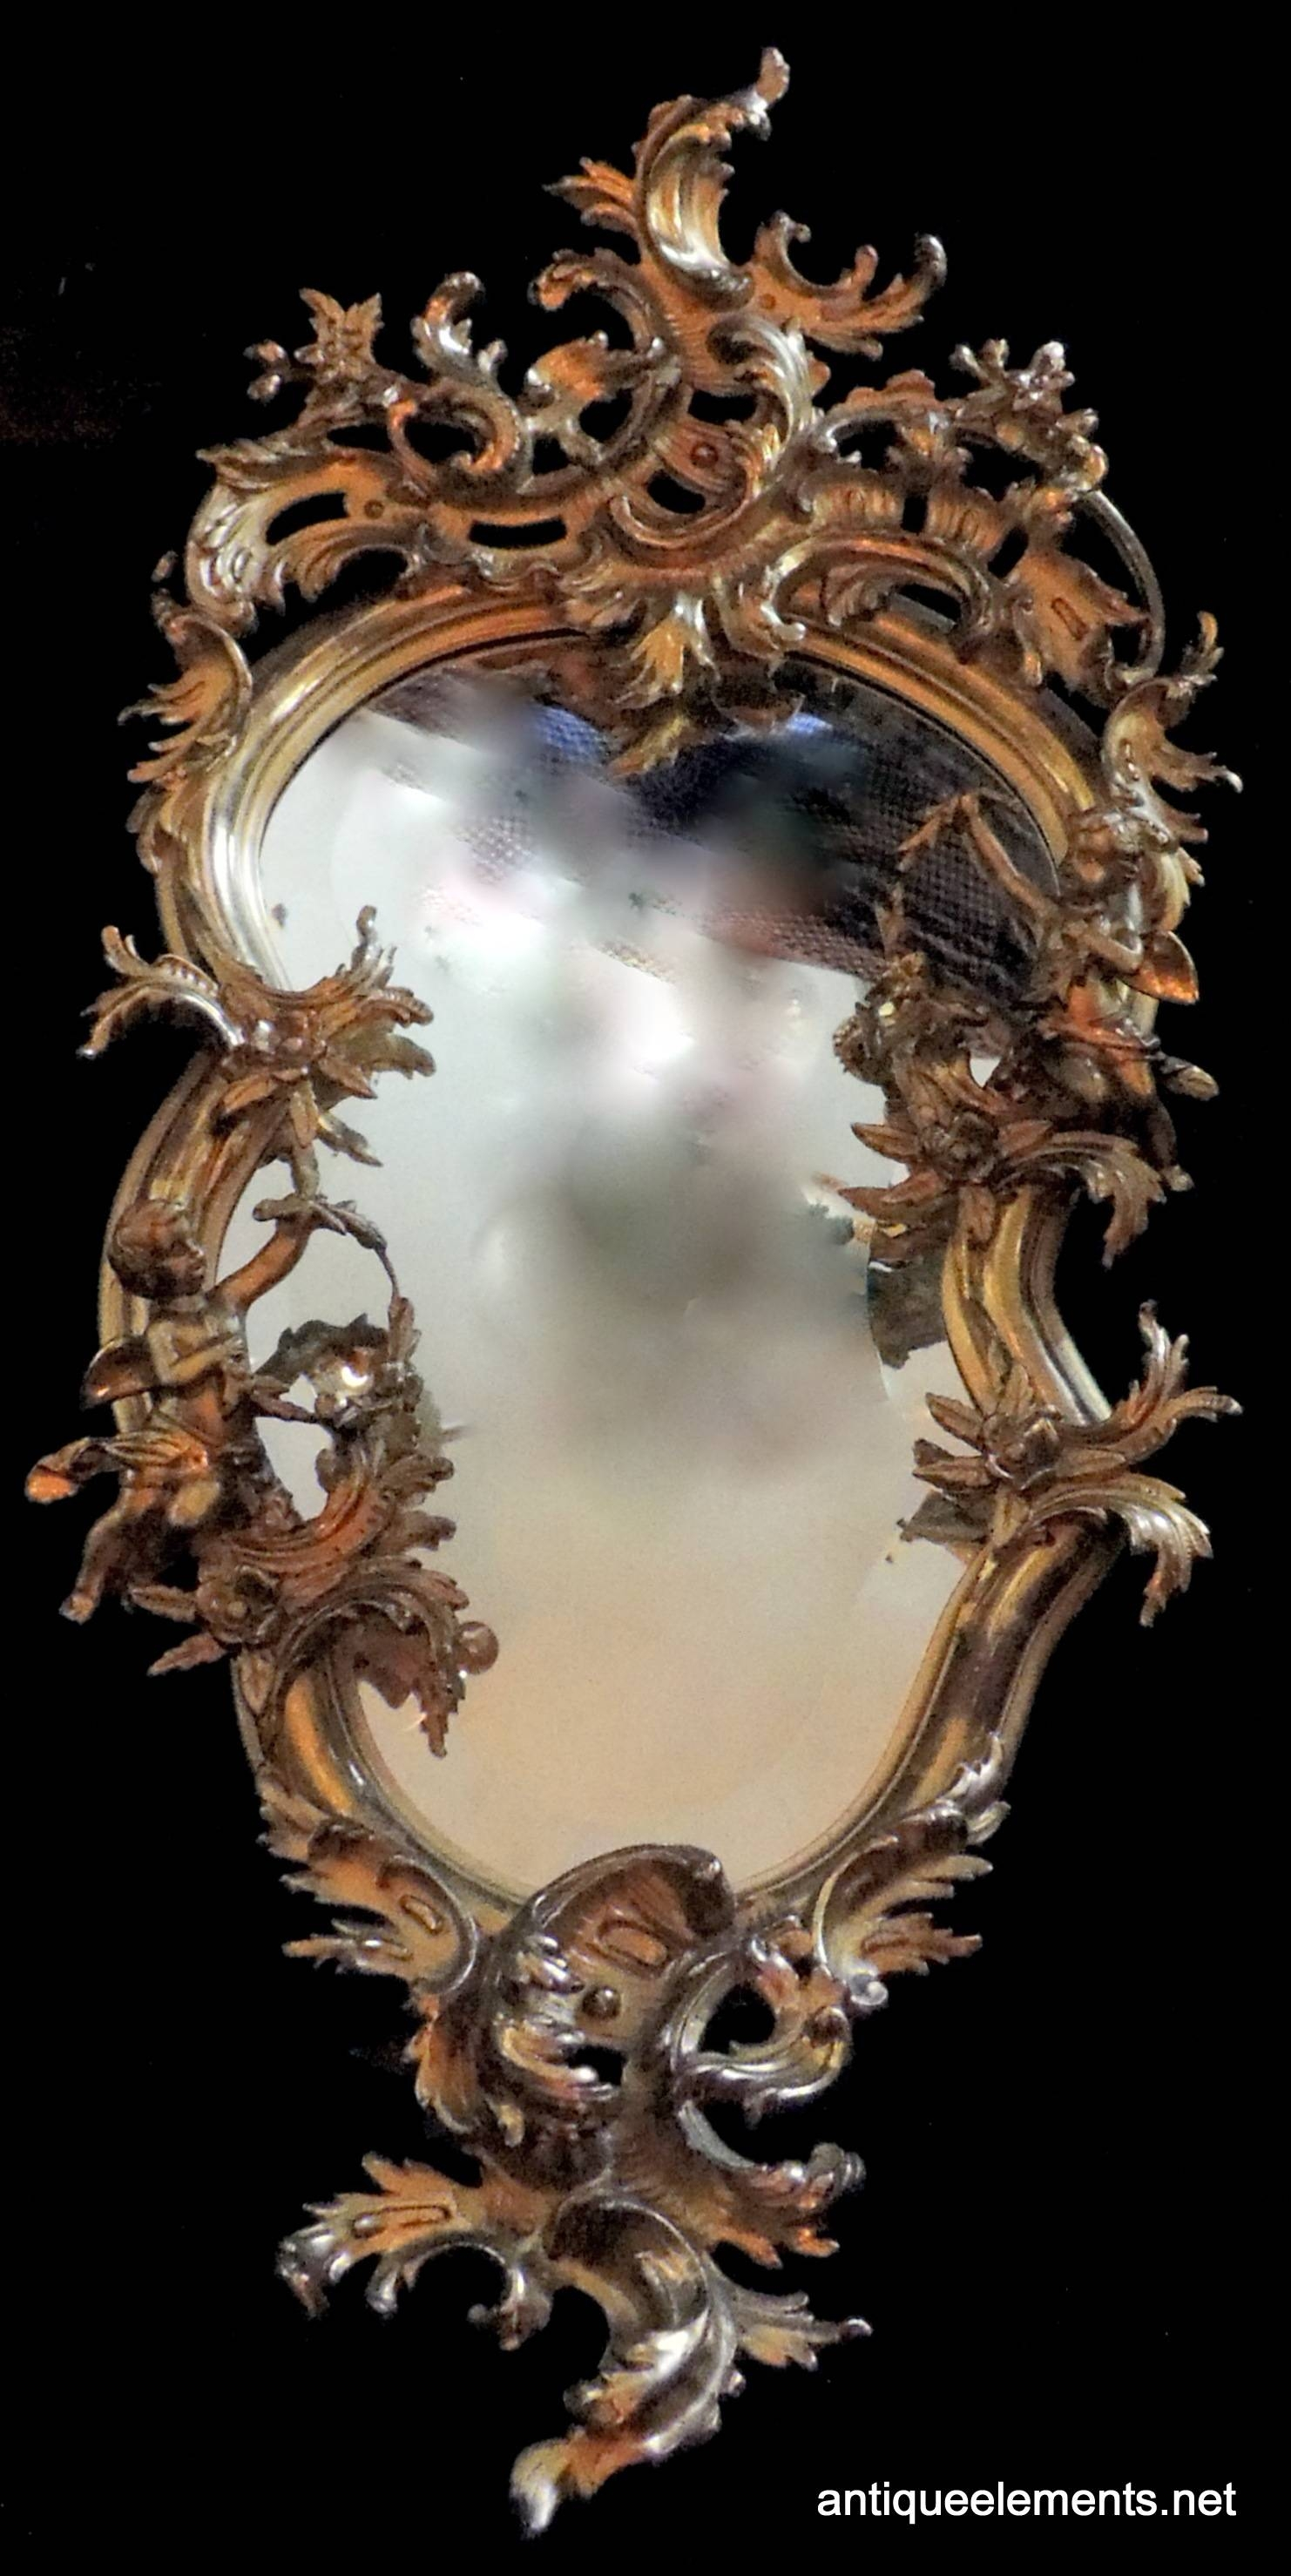 Mr147 19th Century French Gilt Cherub Rococo Mirror | Antique Elements Intended For French Rococo Mirrors (View 5 of 15)